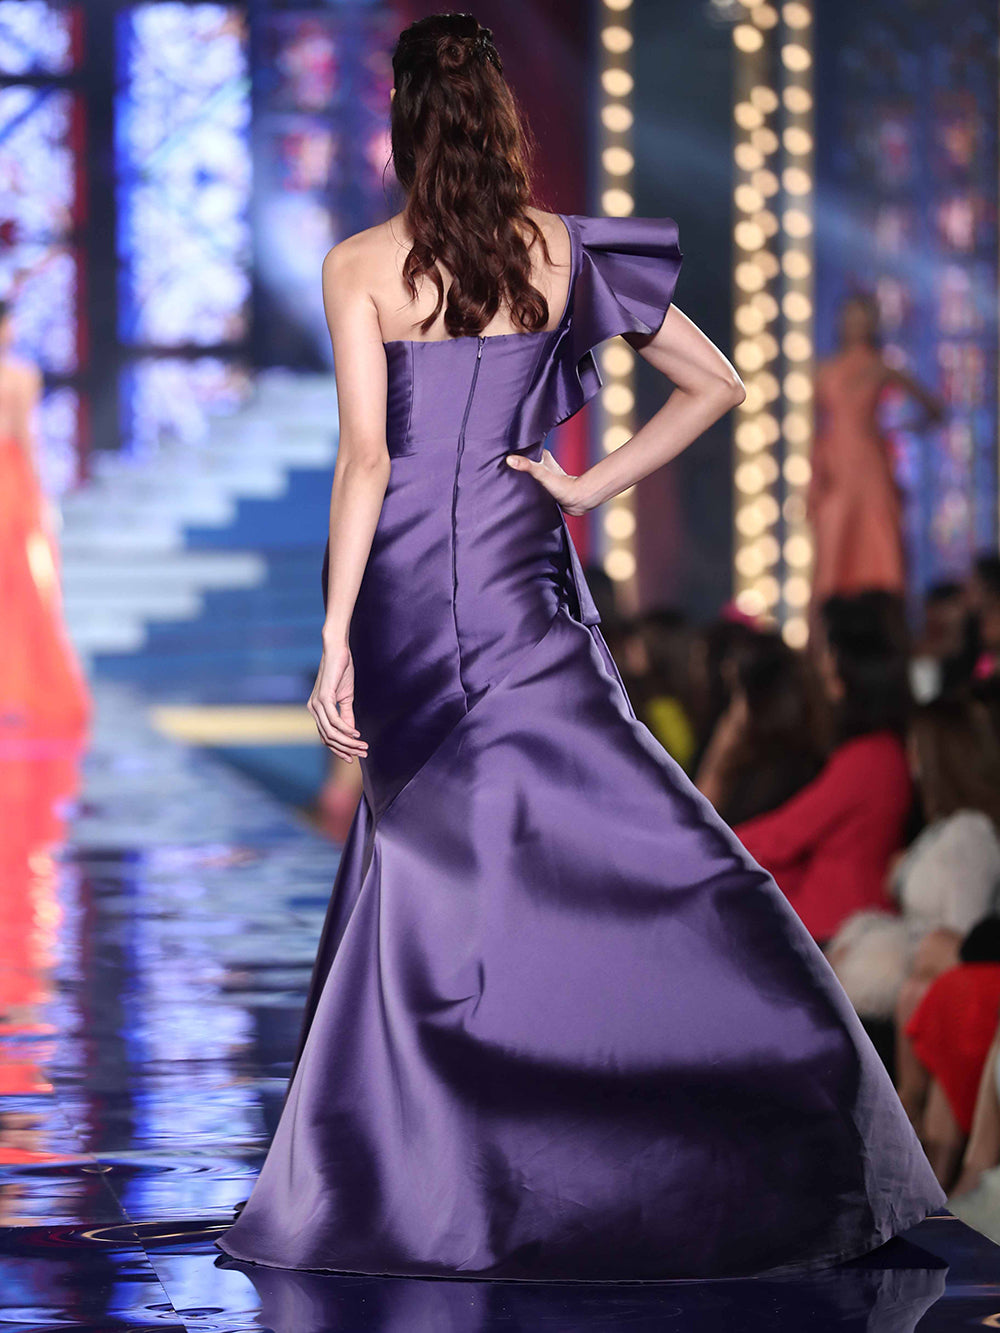 Ultraviolet Gown